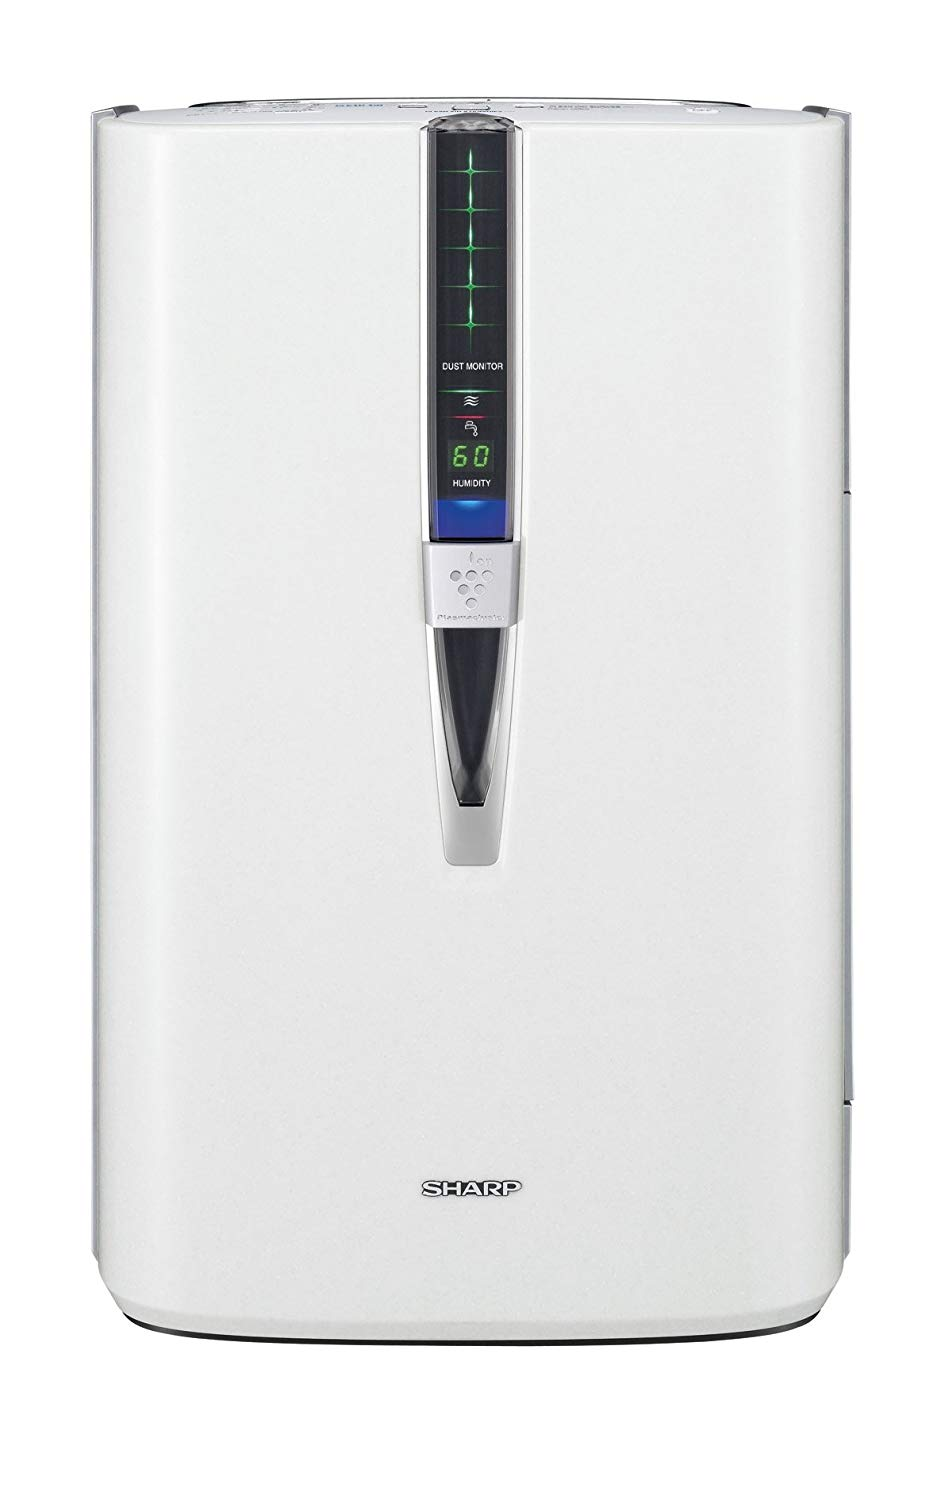 Sharp KC-860U Plasmacluster air purifier